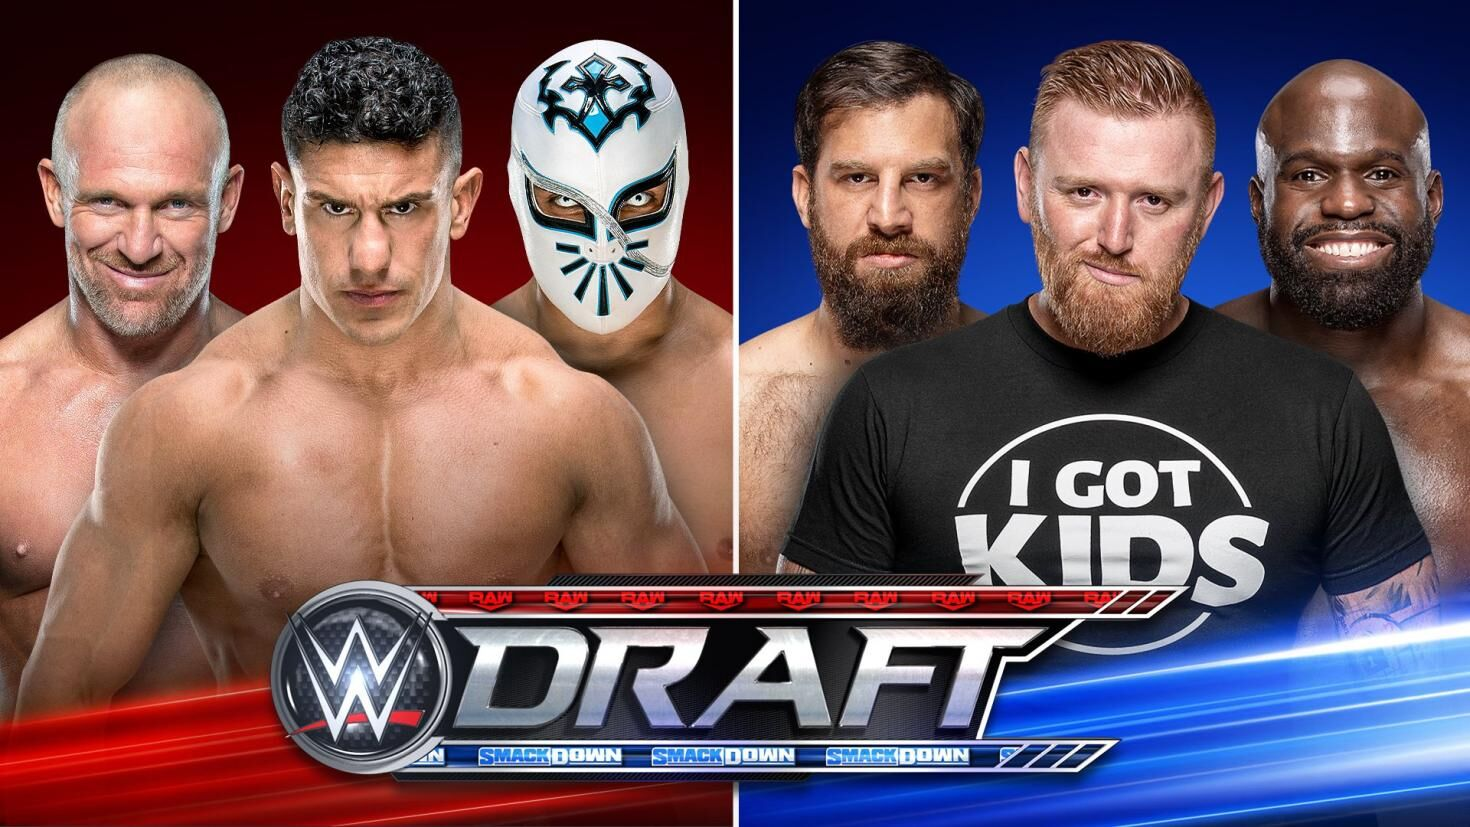 WWE announces more draft picks for Raw, SmackDown